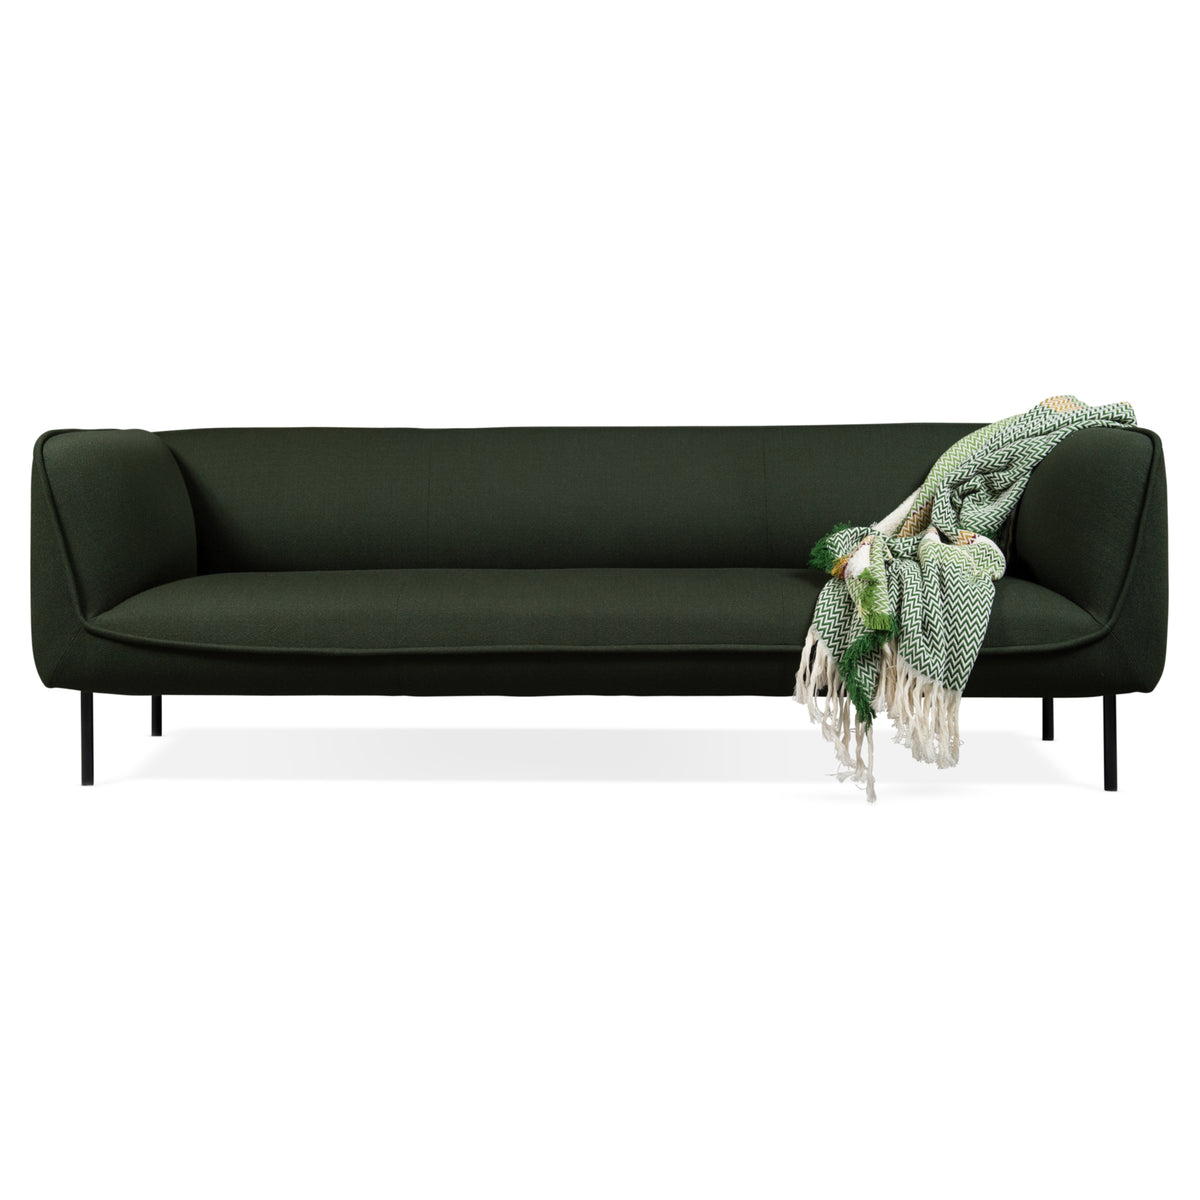 Edsbyn Gather 3 Seater Sofa